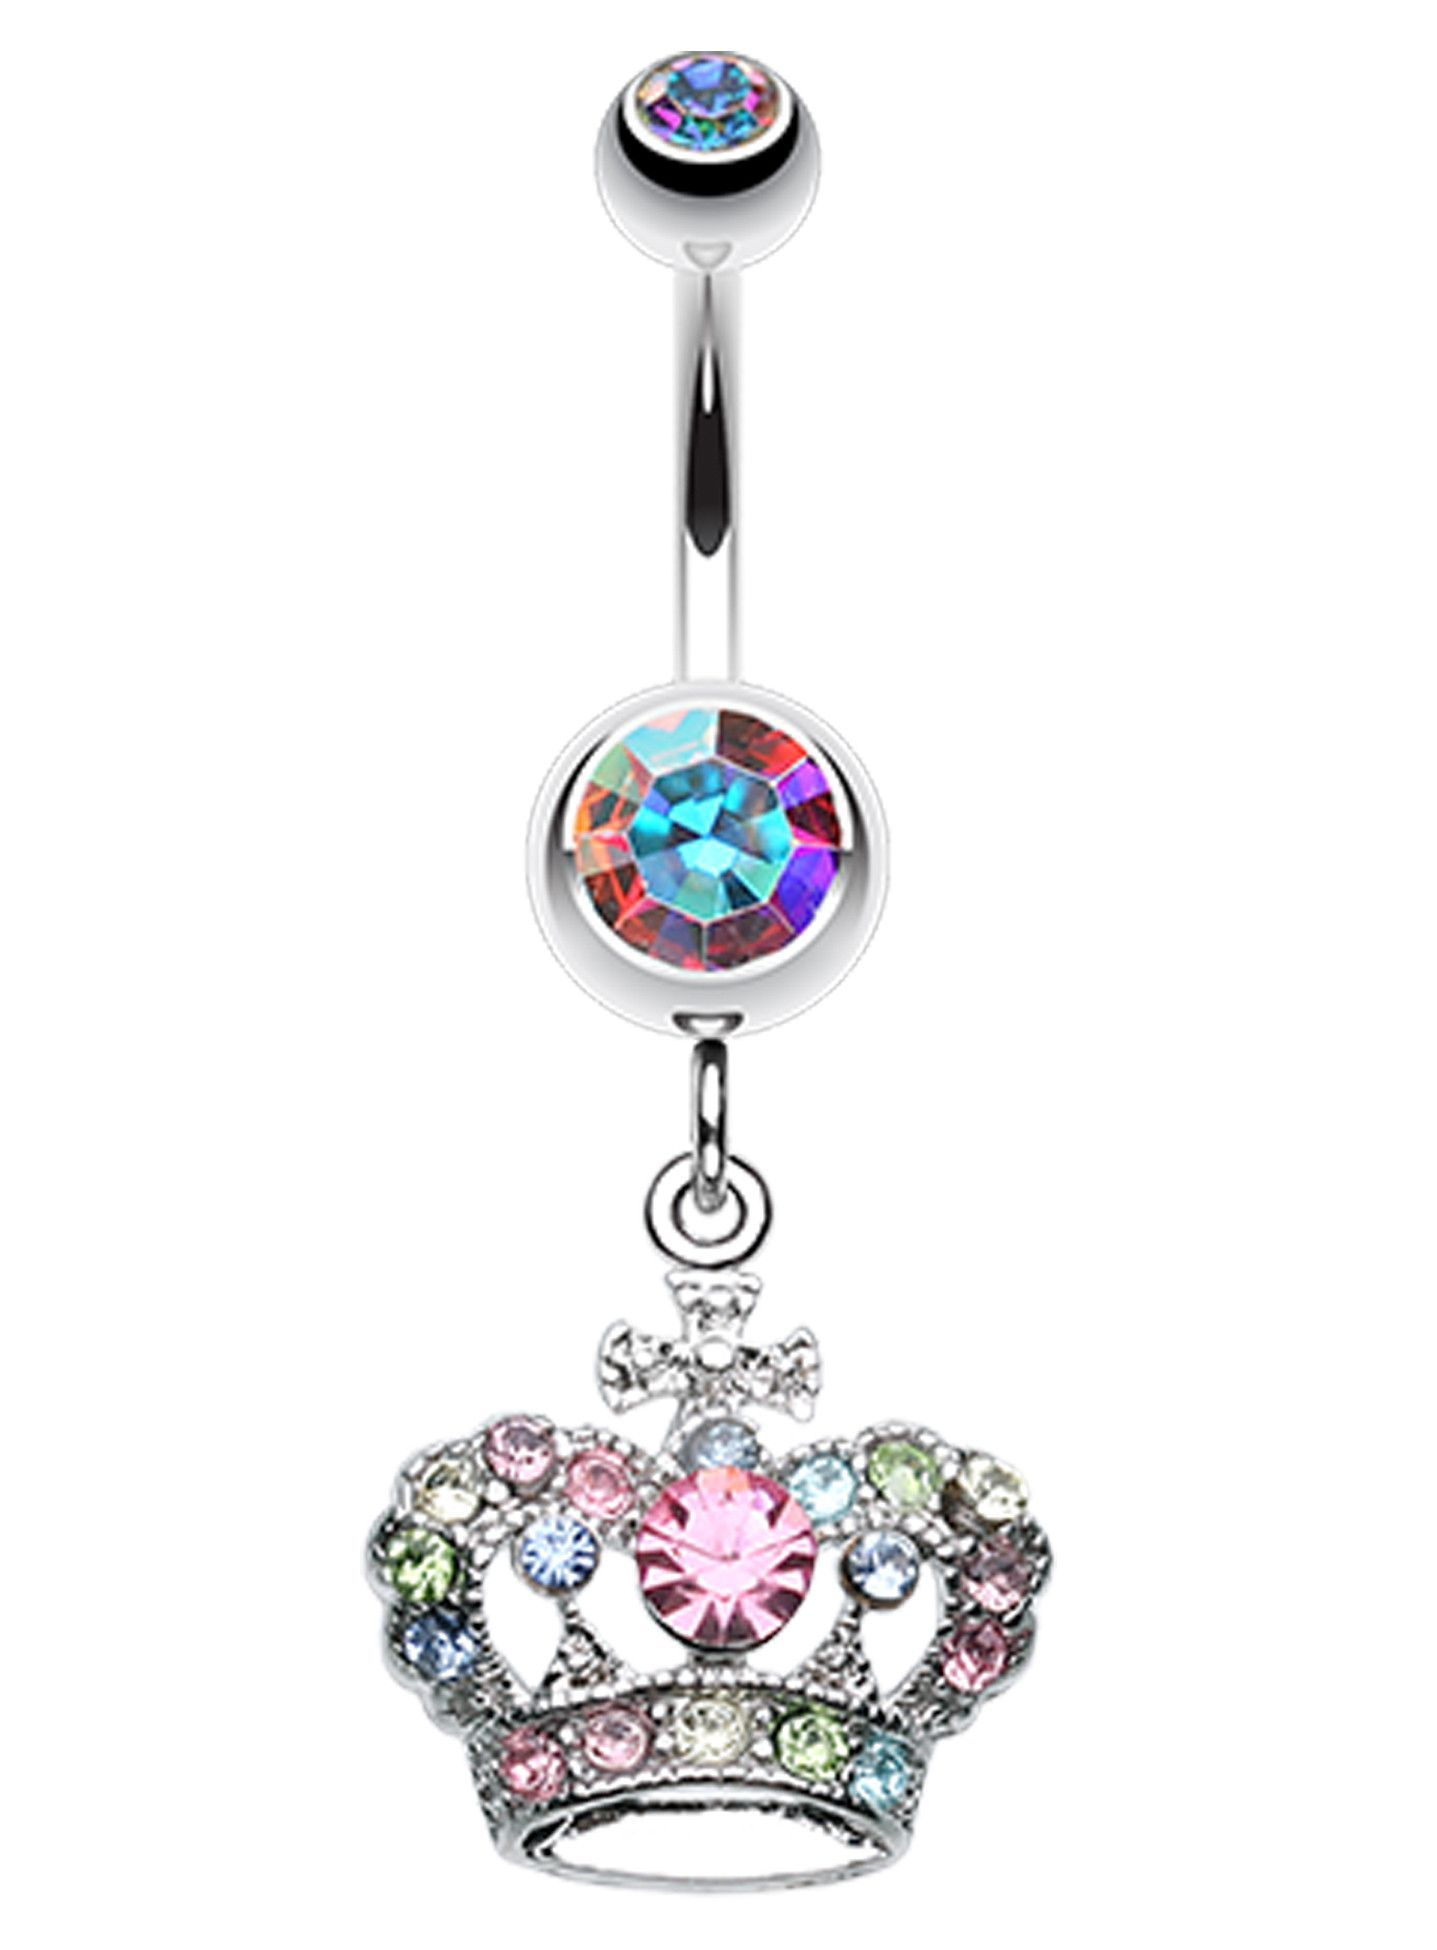 Belly button piercing stud  The Majestic Crown Belly Button Ring  My Style  Pinterest  Belly